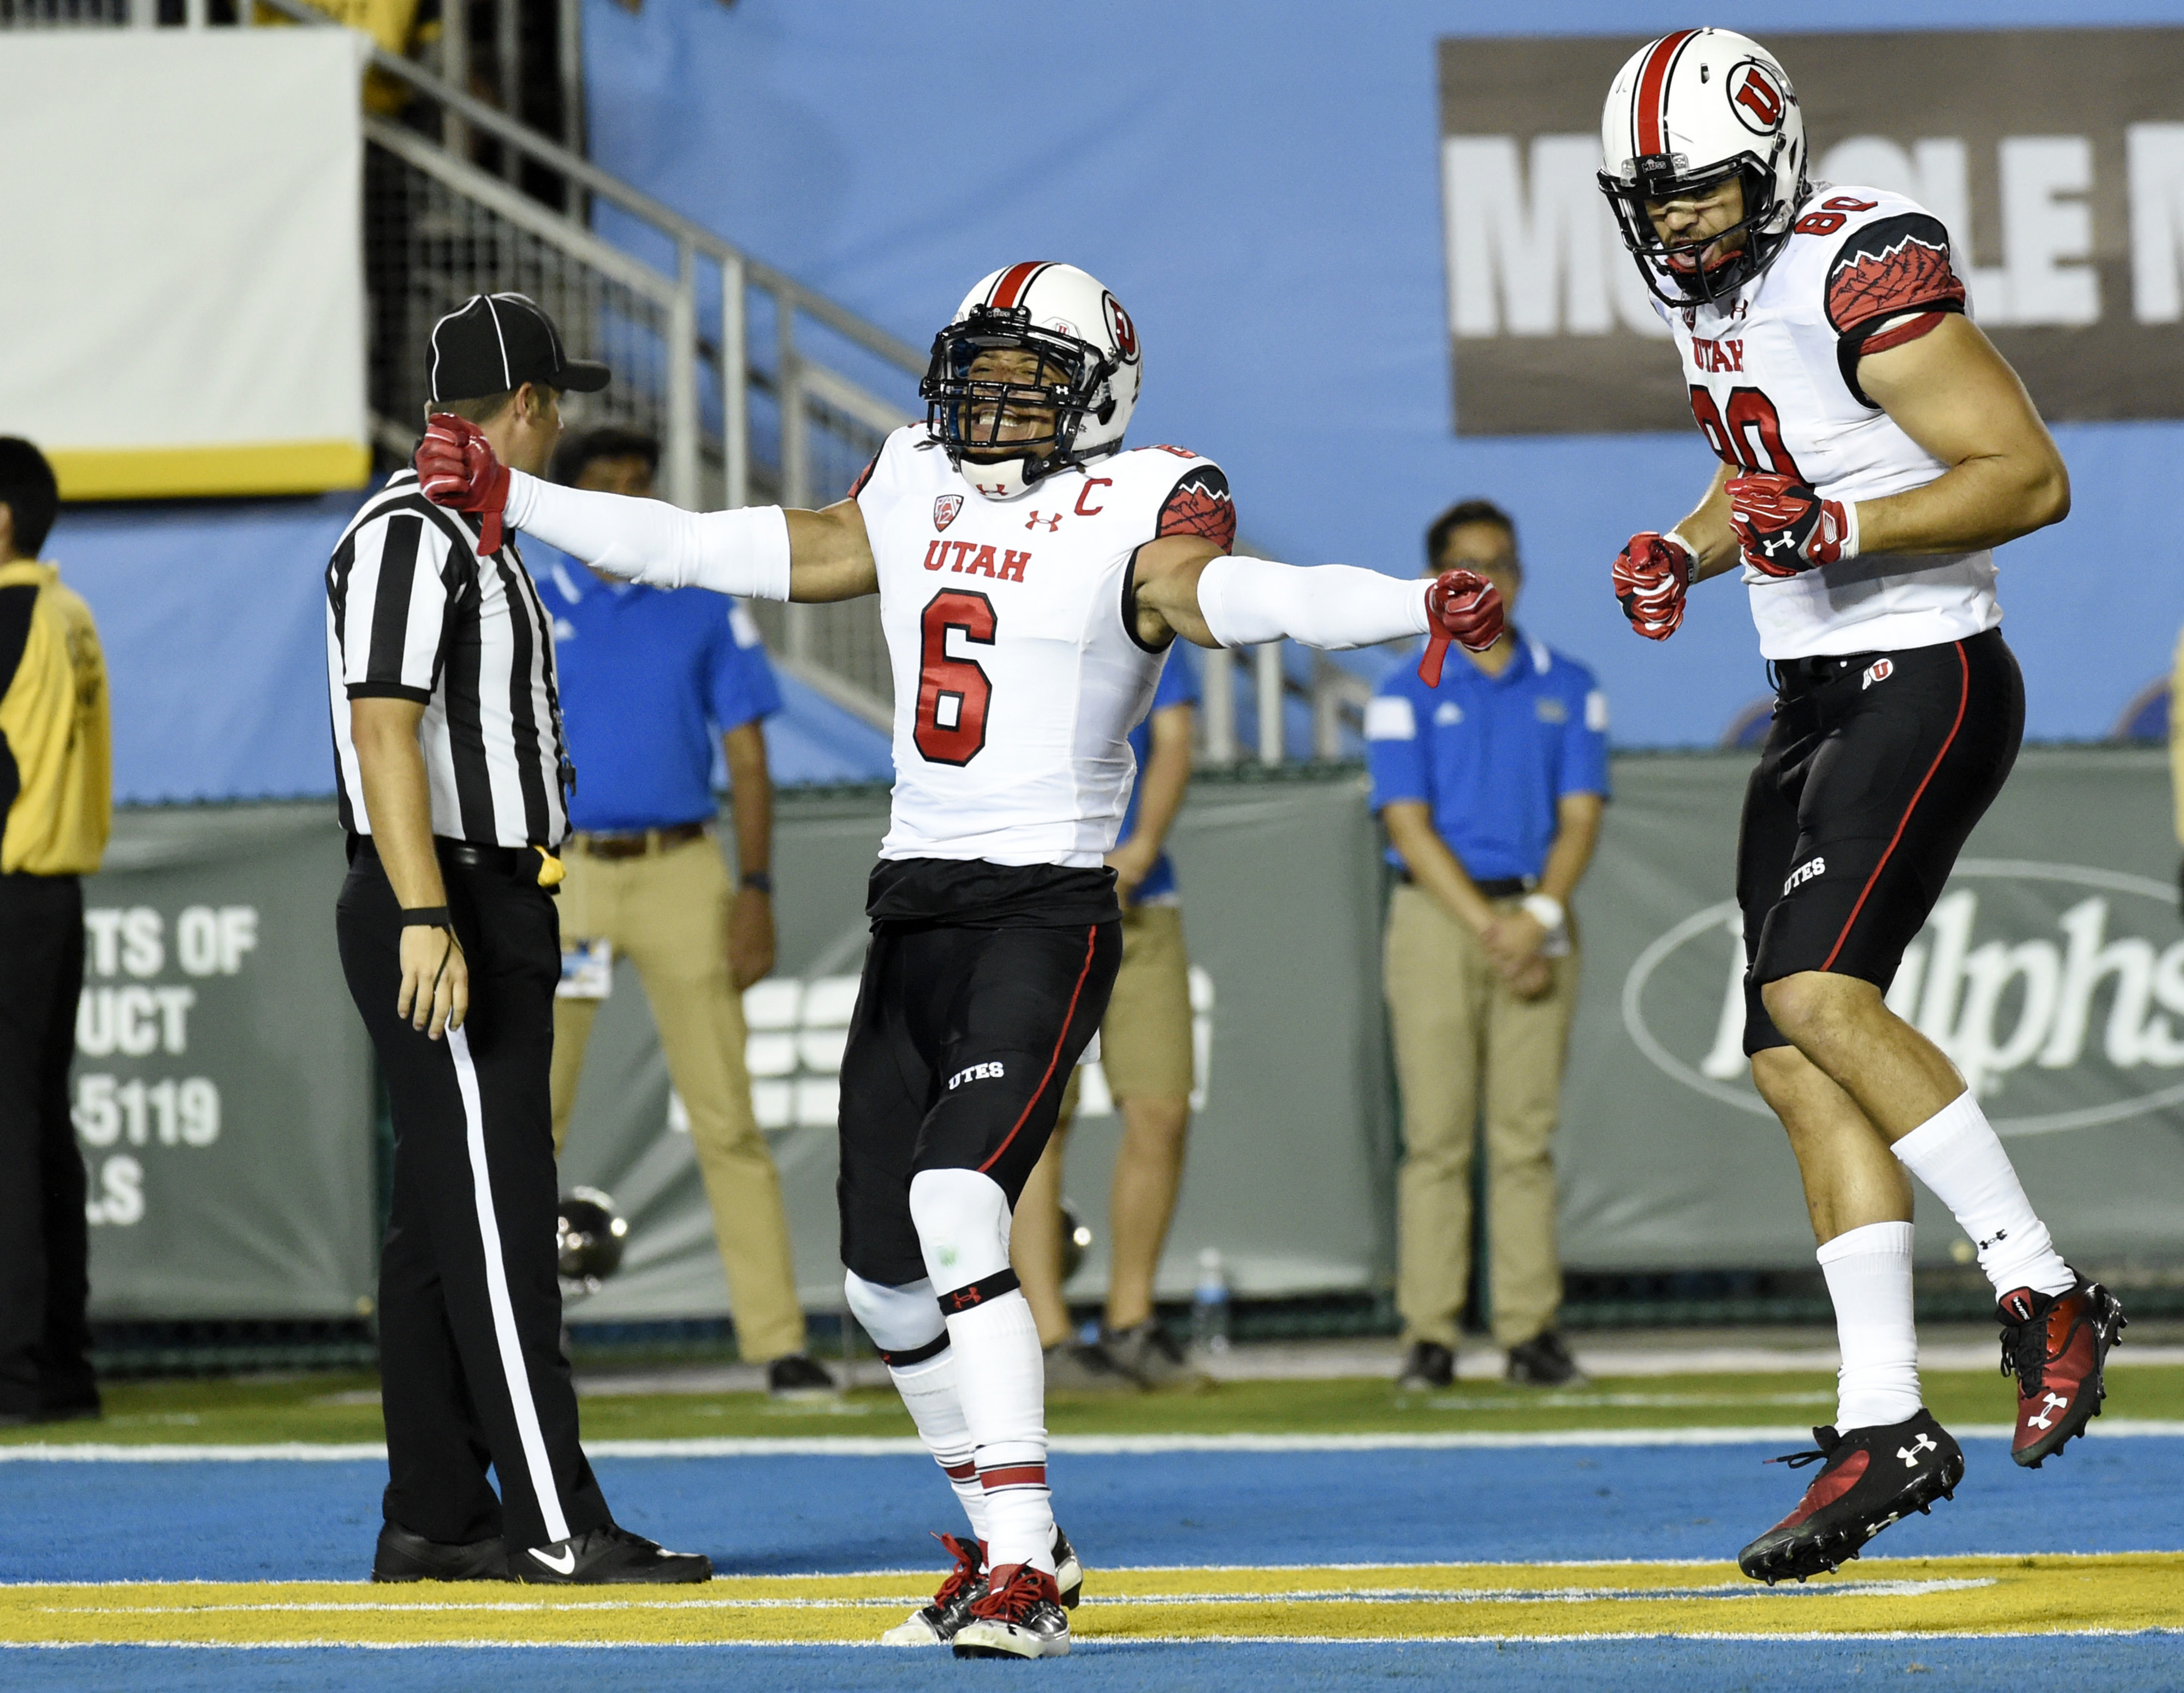 Utah looks to win down in Tempe for injured captain Dres Anderson.